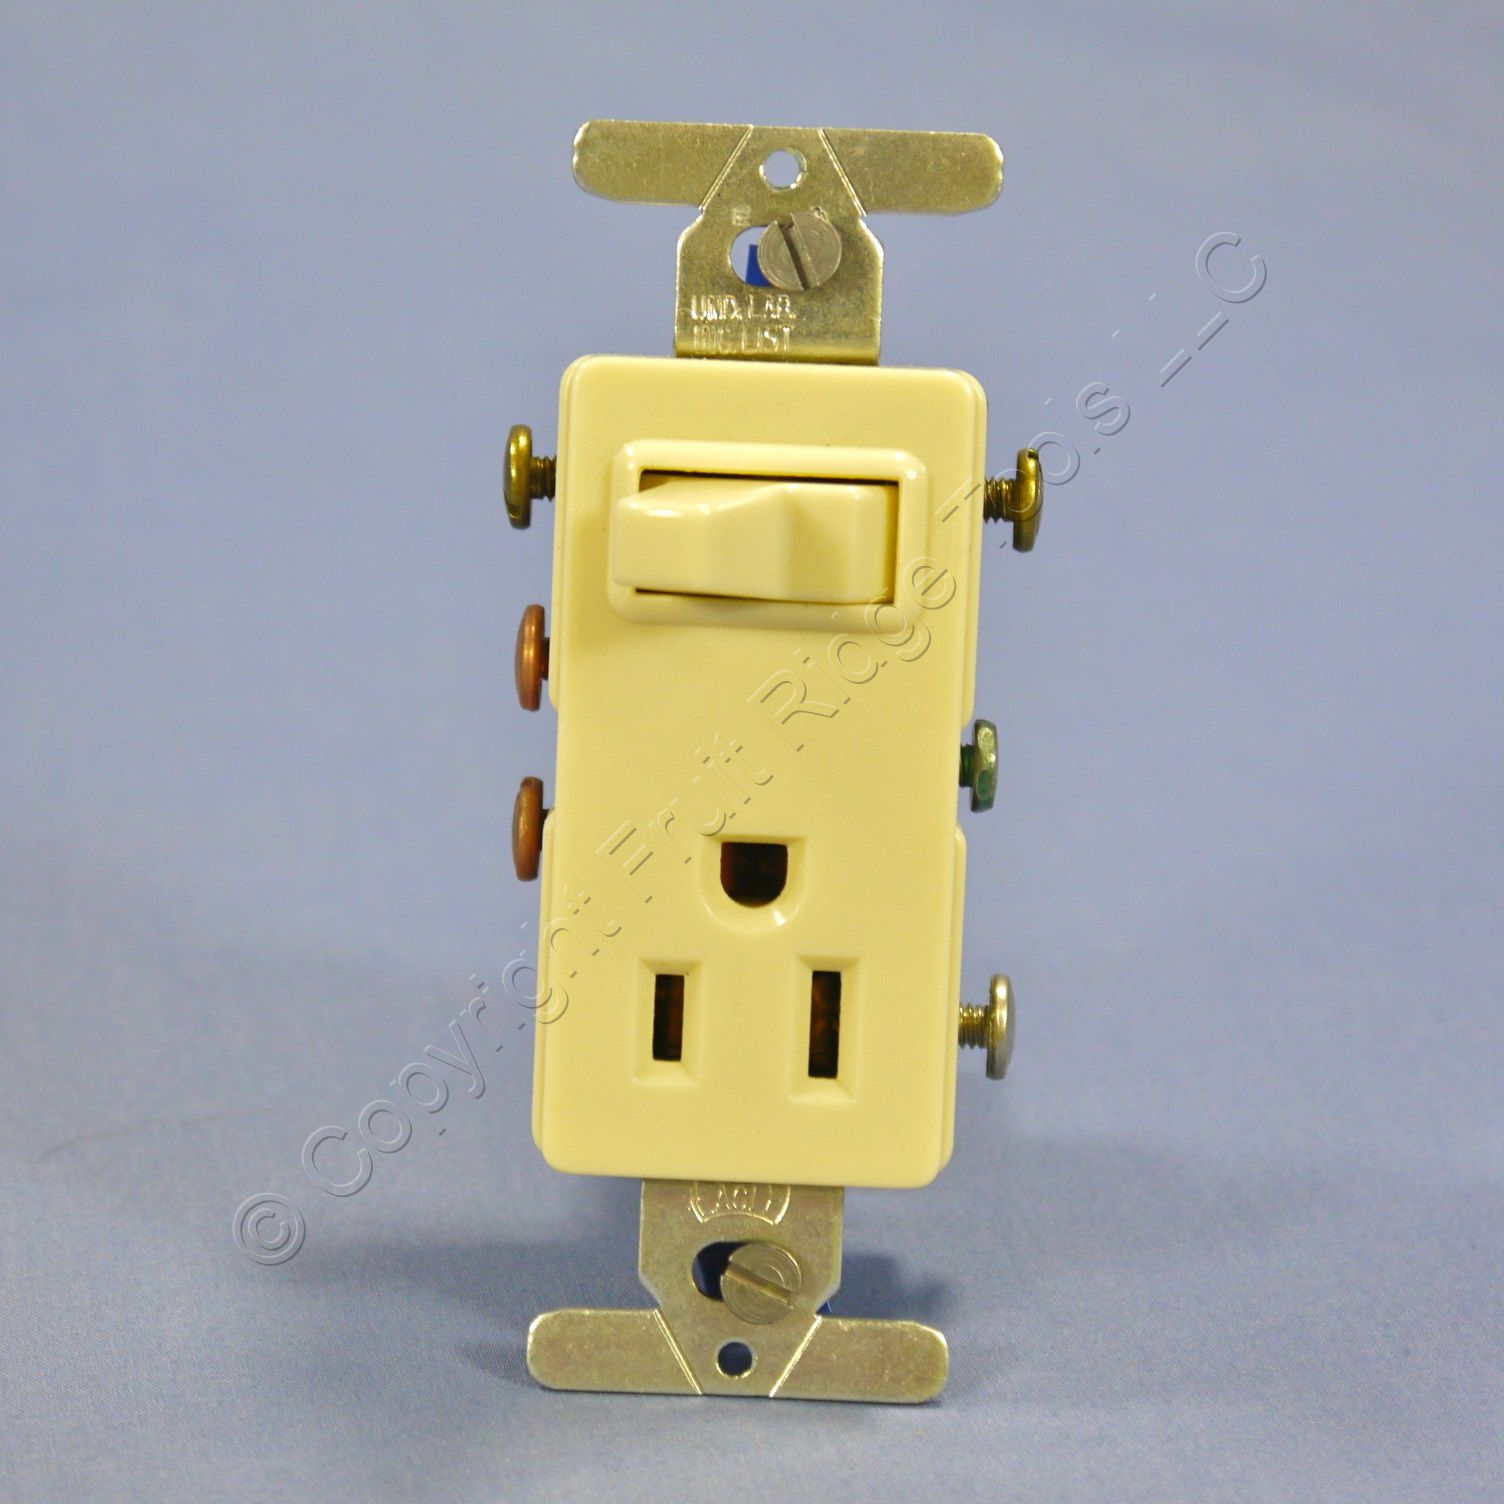 Shop New Eagle Ivory Decorator Combination Light Switch Wiring Diagram Receptacle Outlet 15a 3293v Fruit Ridge Tools